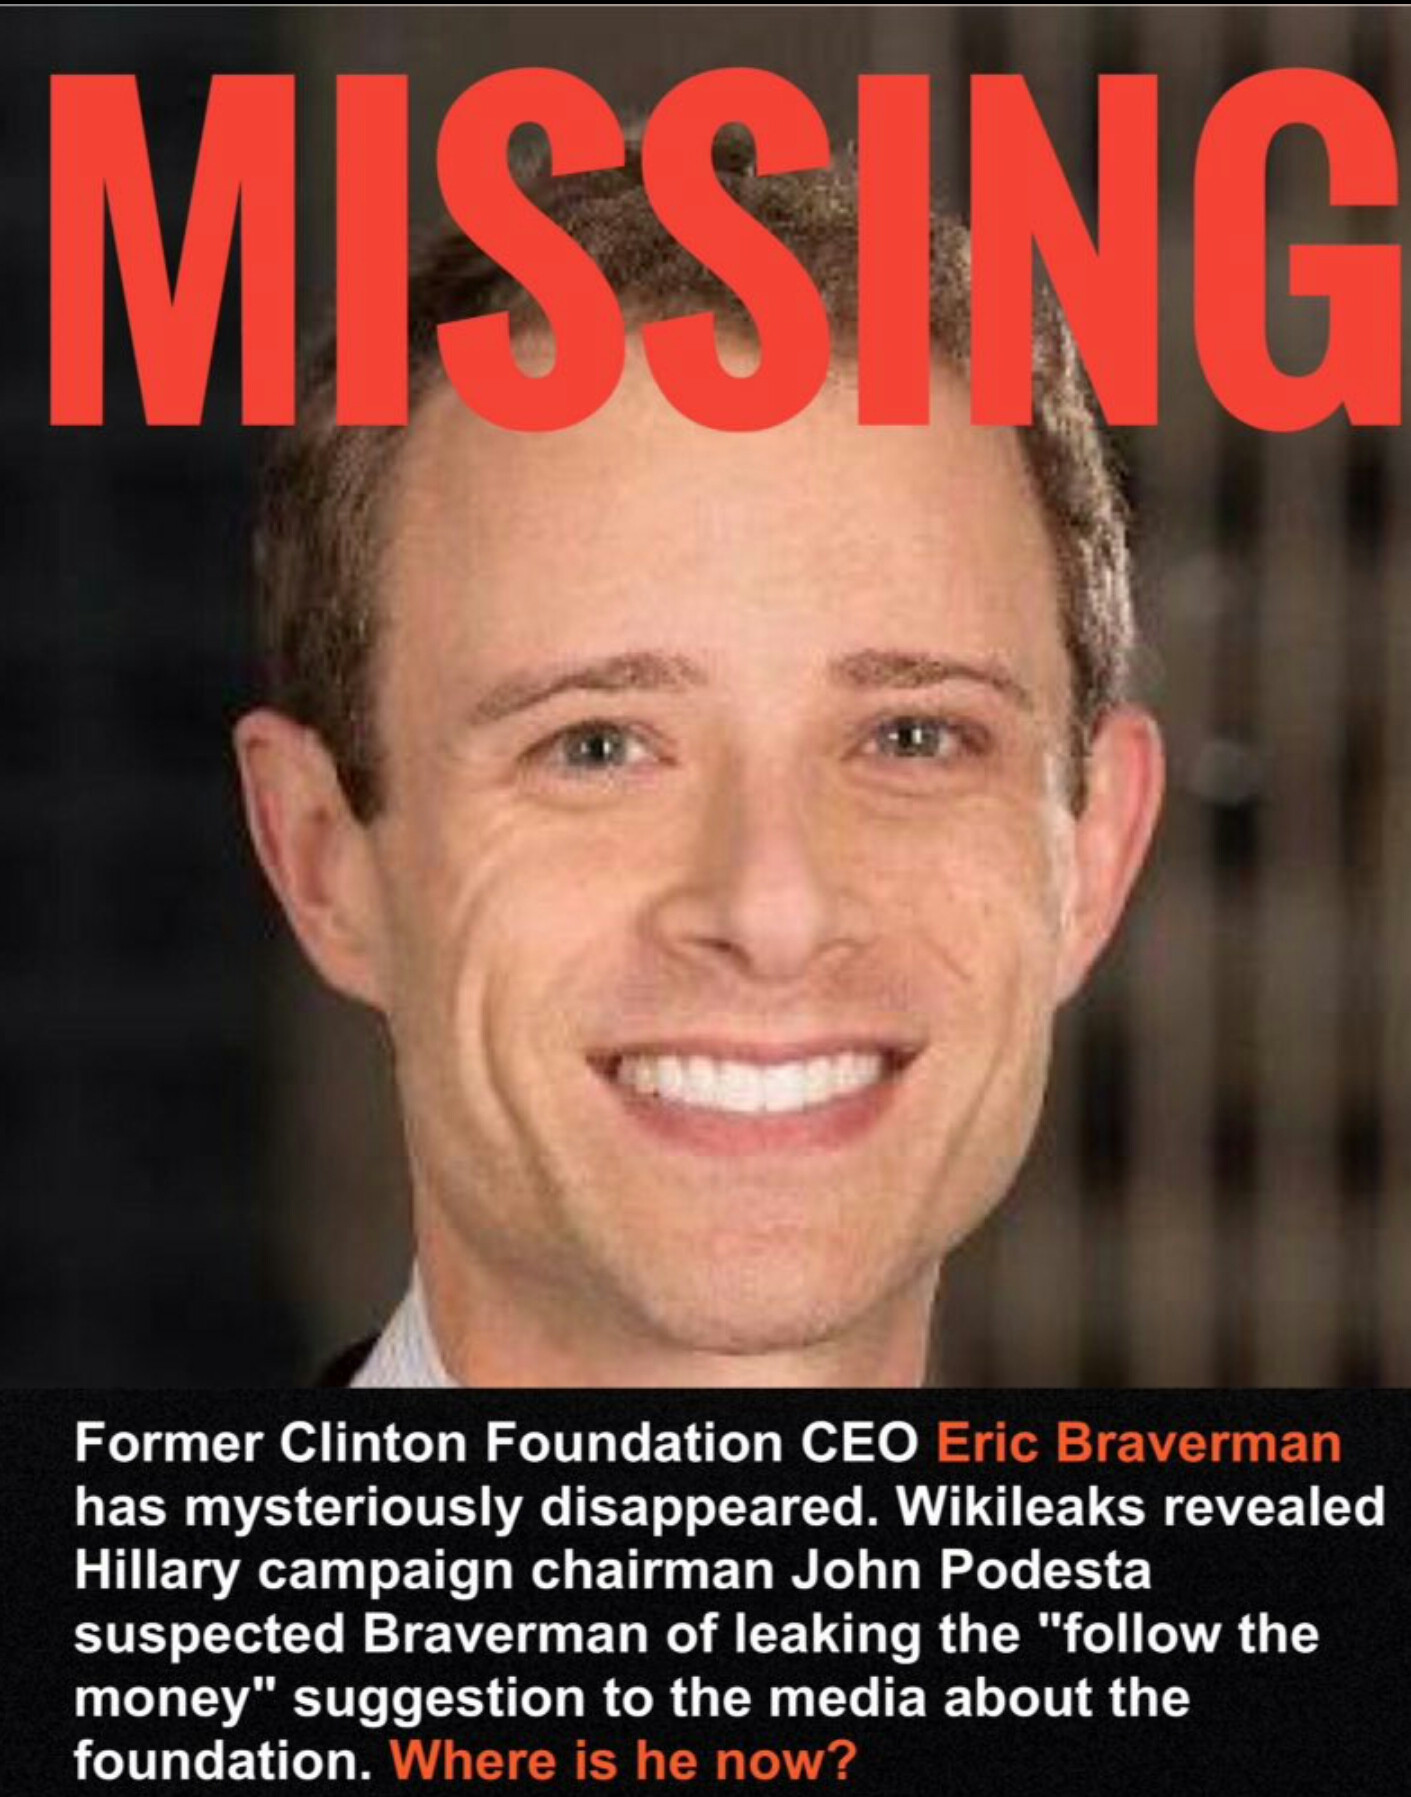 """NEW MISSING PERSON: Former Clinton Foundation CEO Eric Braverman has gone missing after John Podesta suspected Braverman of leaking the """"Follow The Money"""" suggestion to the media and the world. VERY suspicious."""